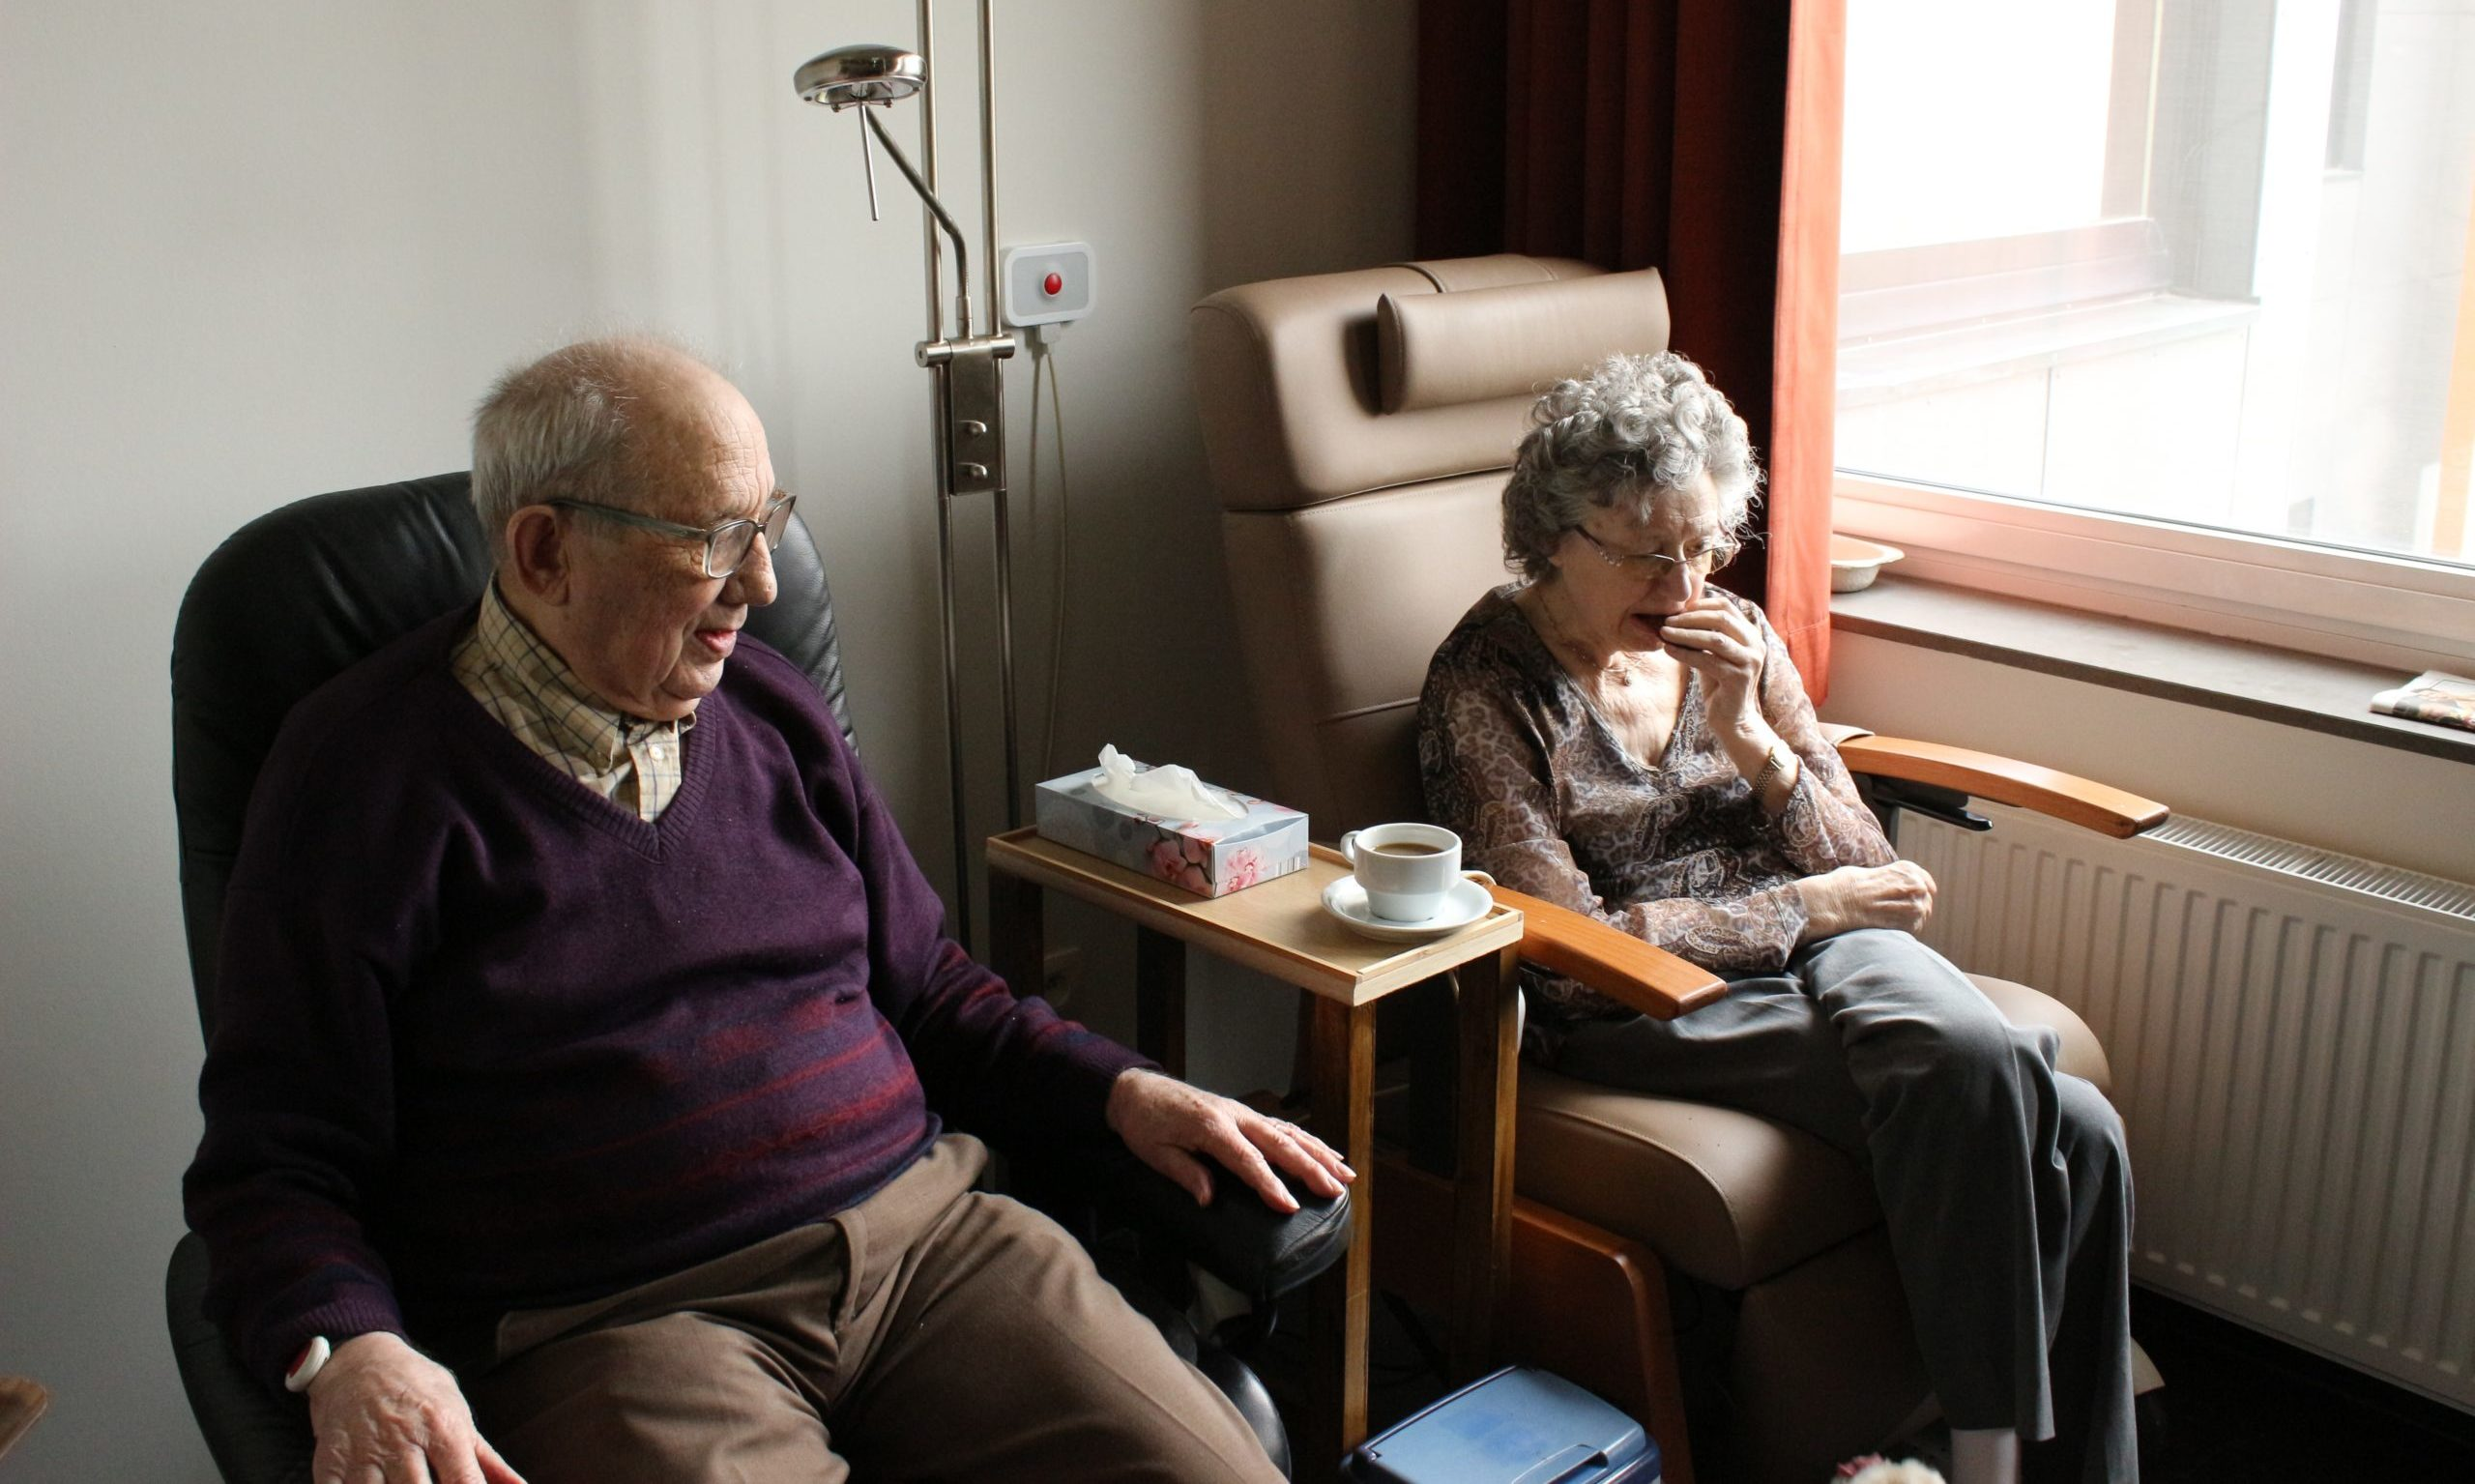 elderly couple sitting by window geriatric our clients Endless Journey Hospice Omaha Nebraska